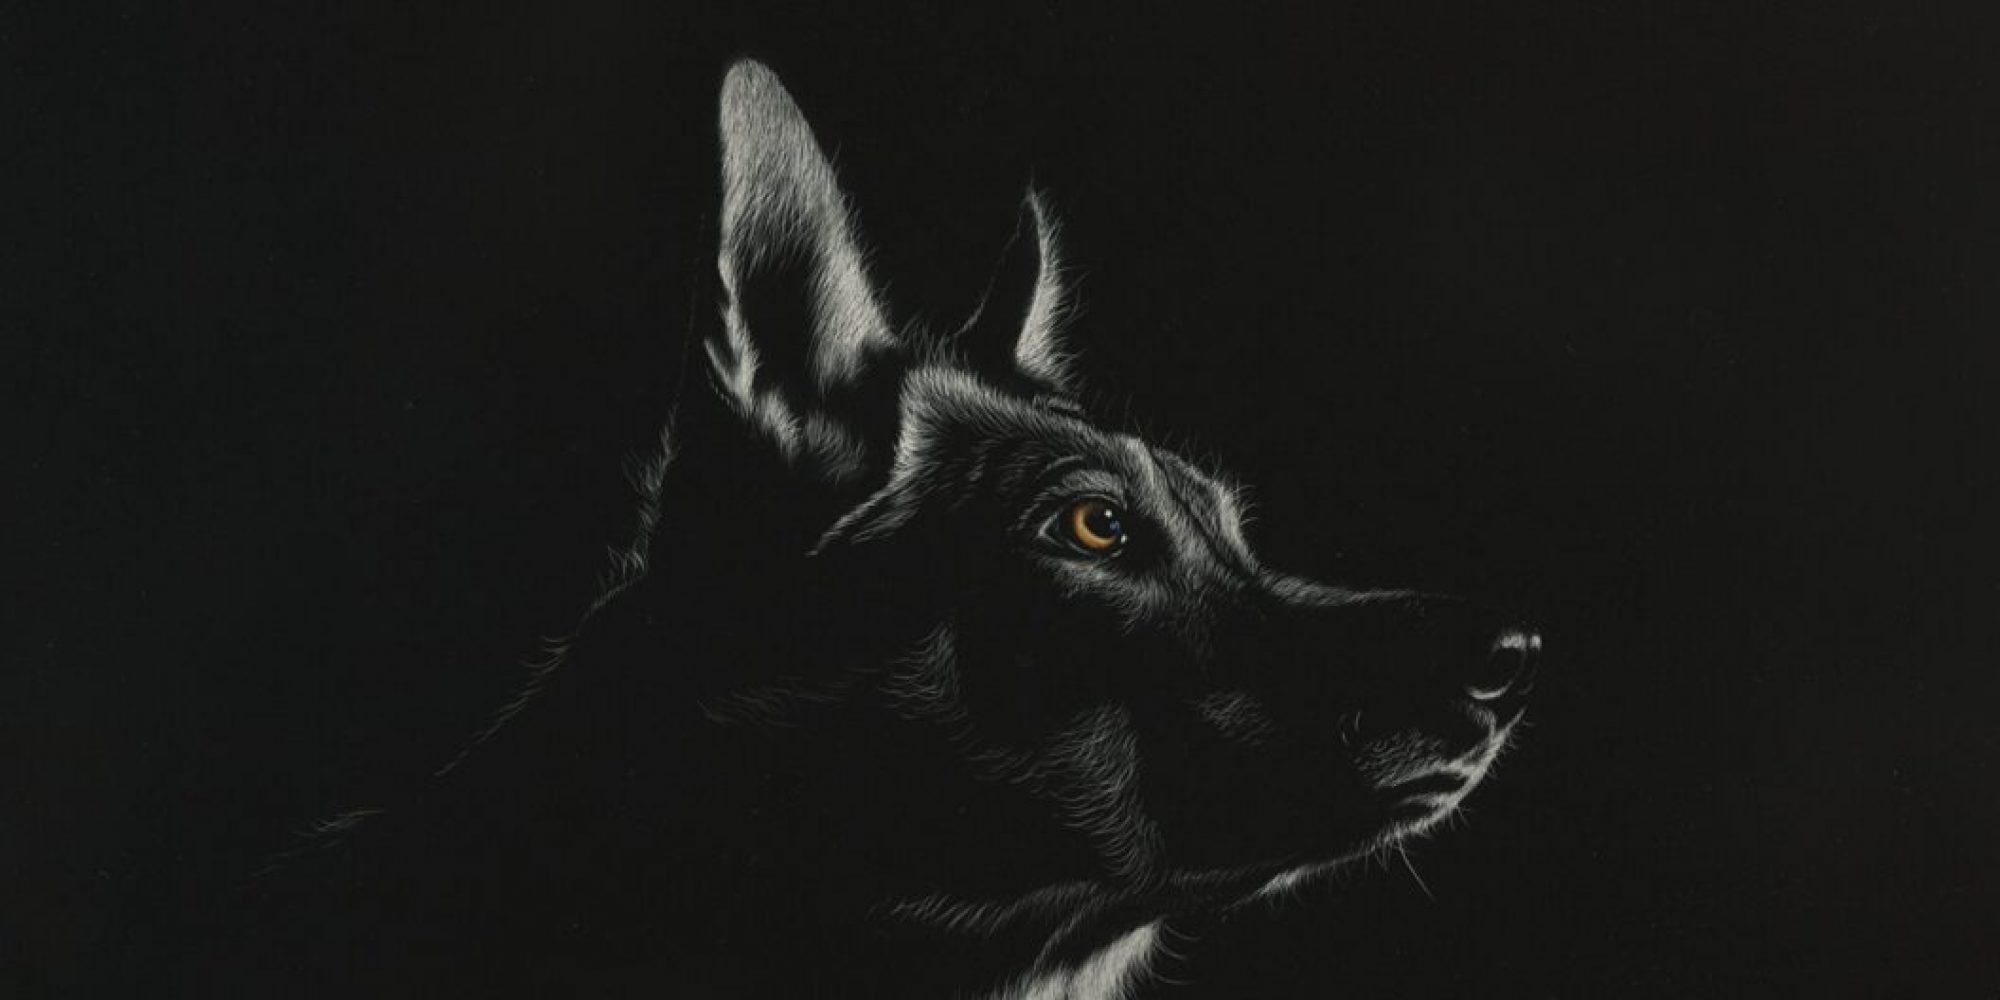 cropped-Wolves_Painting_Art_Head_Black_and_white_Black_531032_1920x1080.jpg